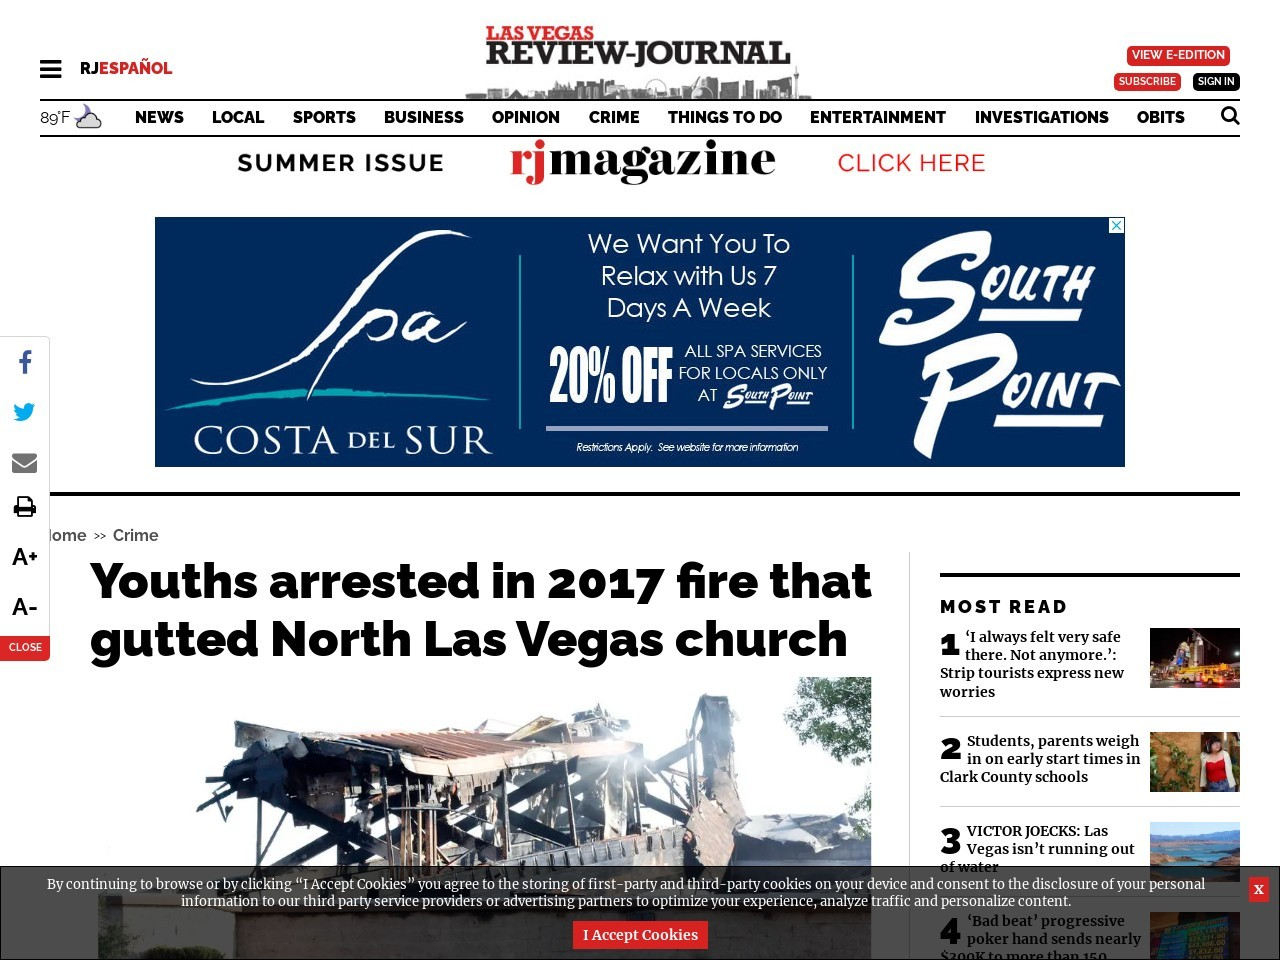 Youths arrested in 2017 arson fire that gutted North Las Vegas church